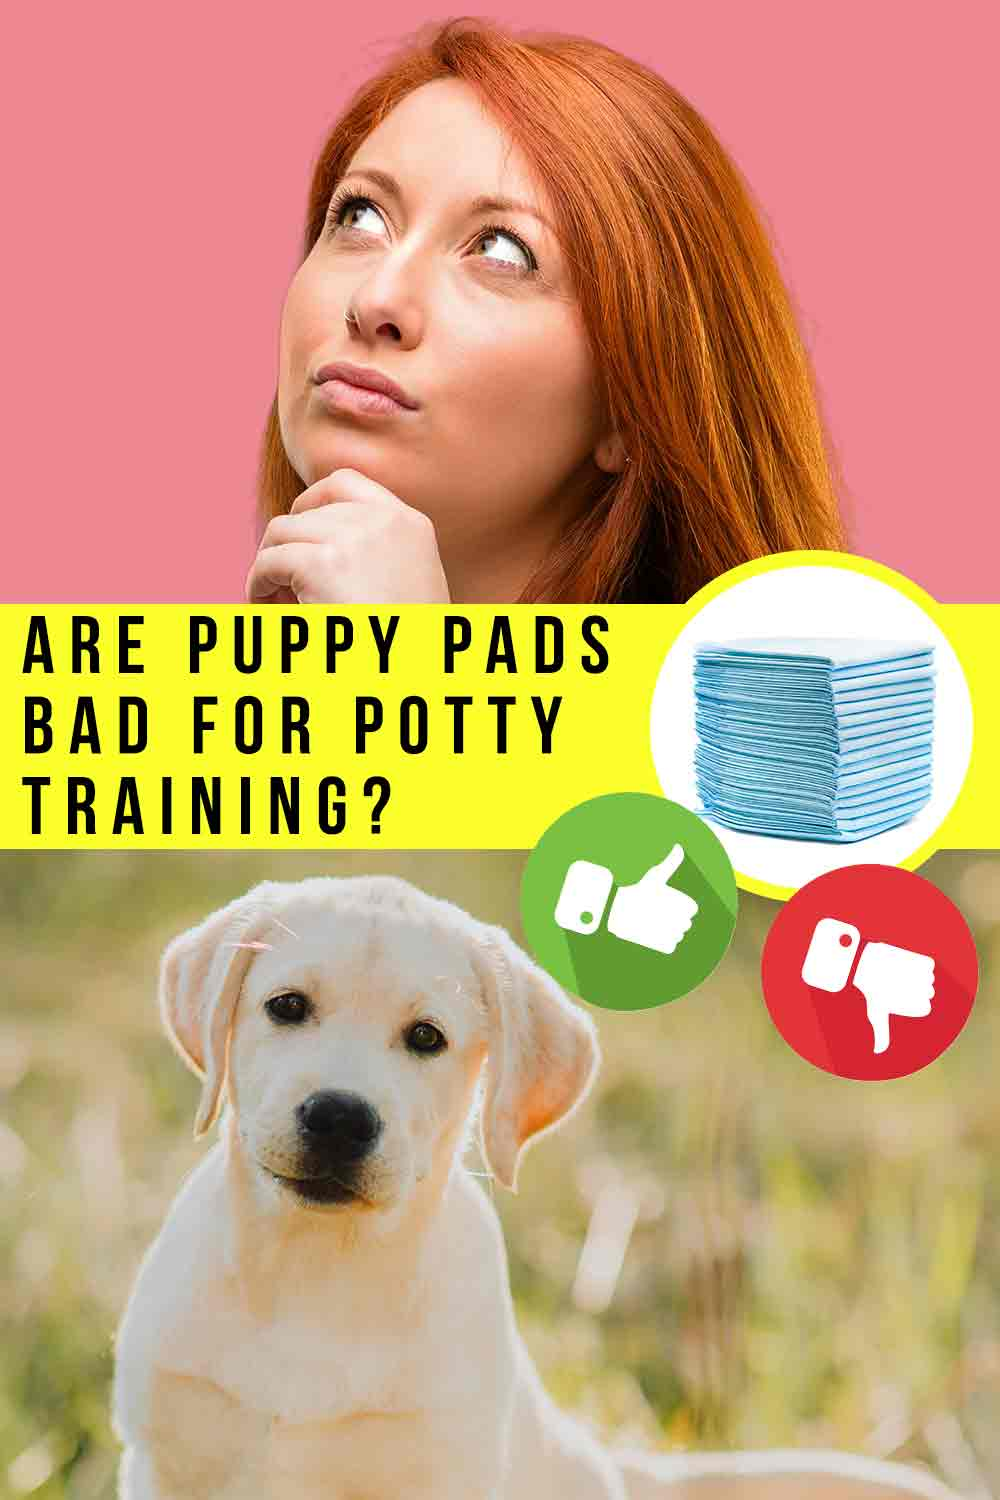 are puppy pads bad for potty training